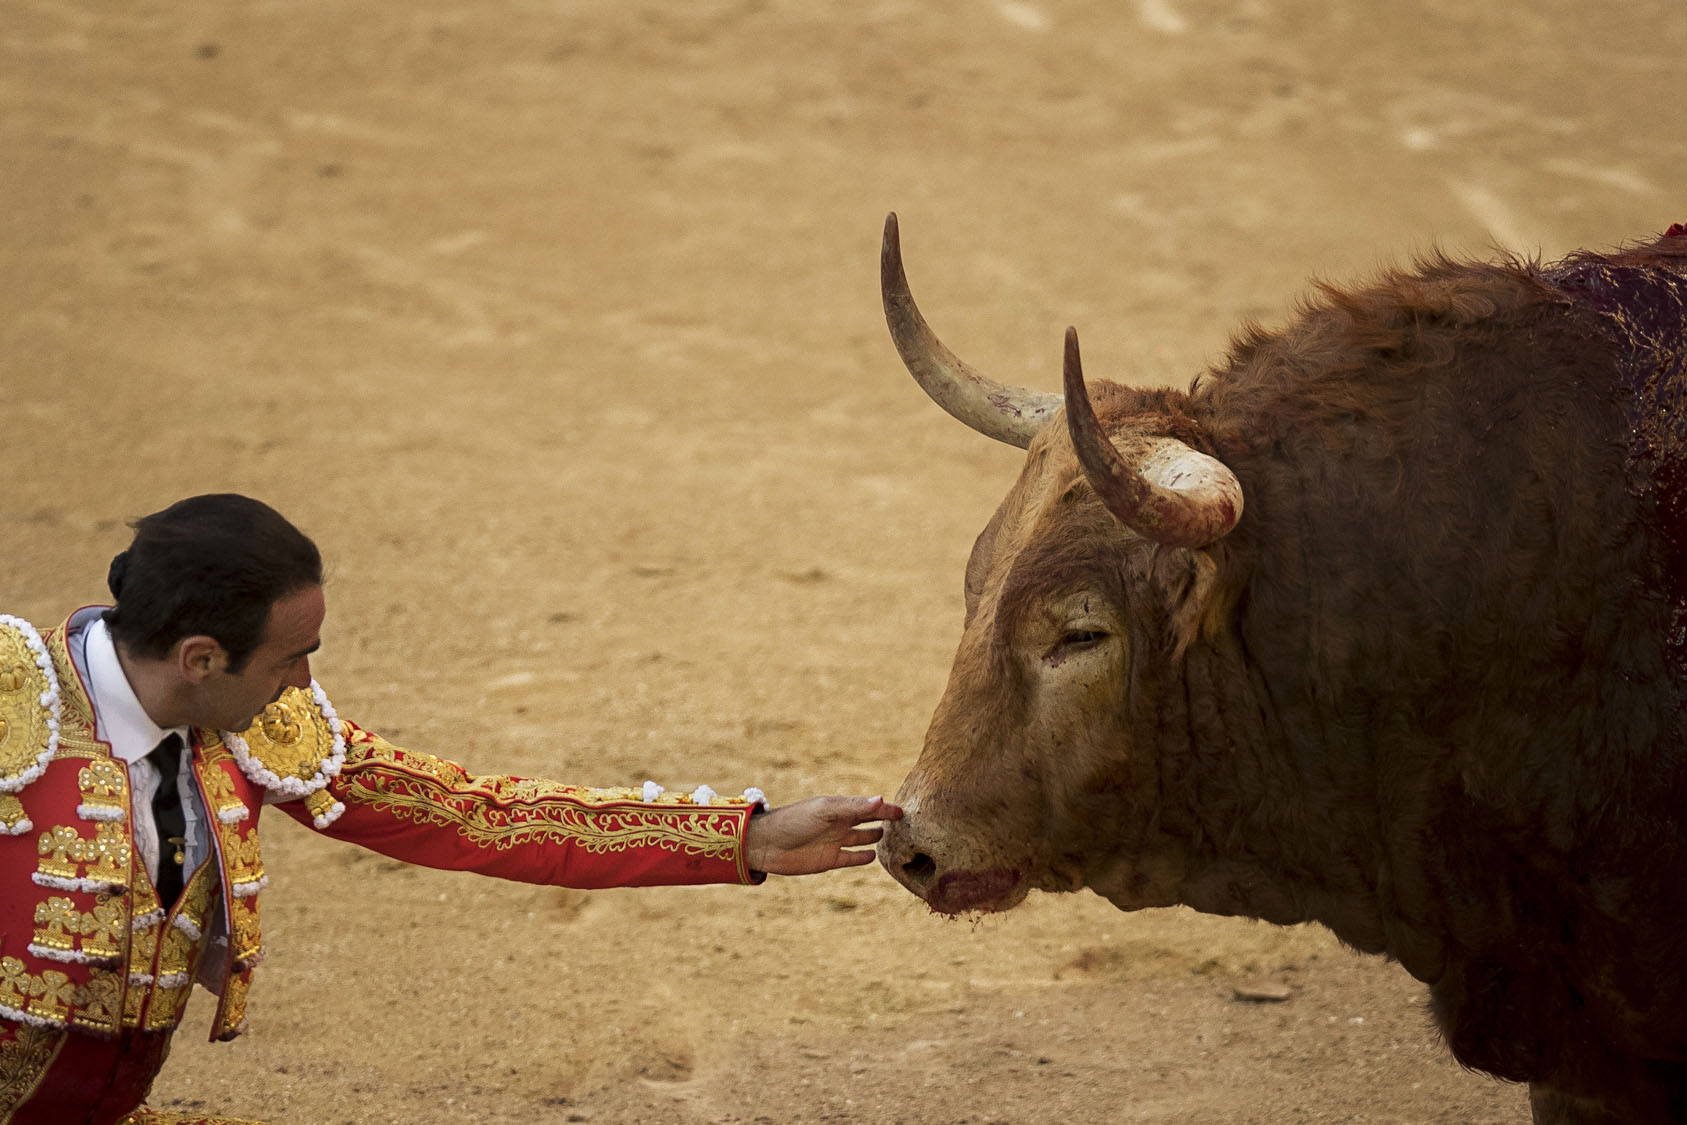 spanish bullfighting Meet the students who dream of becoming spain's new generation of bullfighters even as opposition to bullfighting grows.